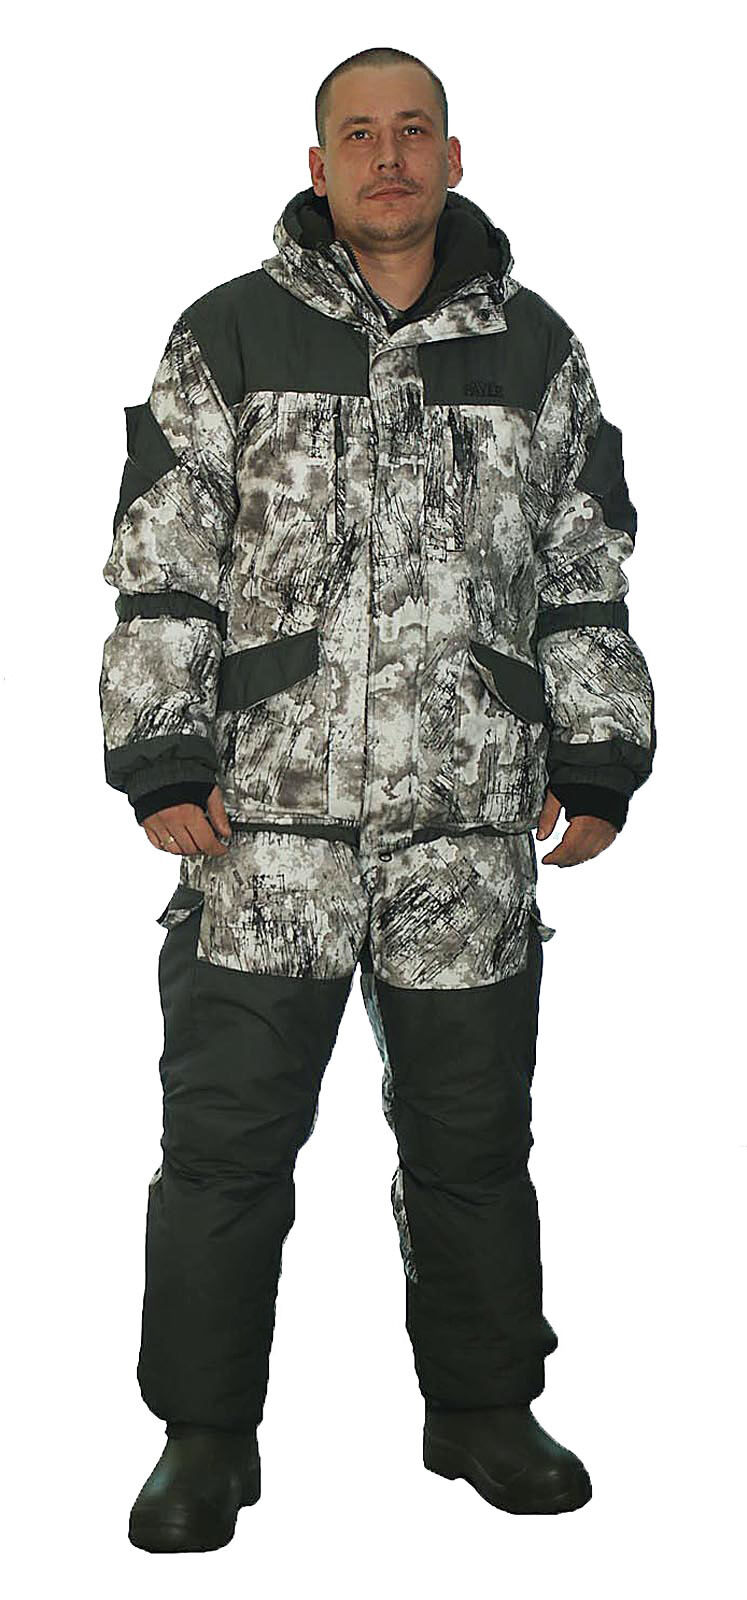 Russian GORKA WINTER Uniform    Suit Military Army Camouflage Hunting Fishing  quality assurance